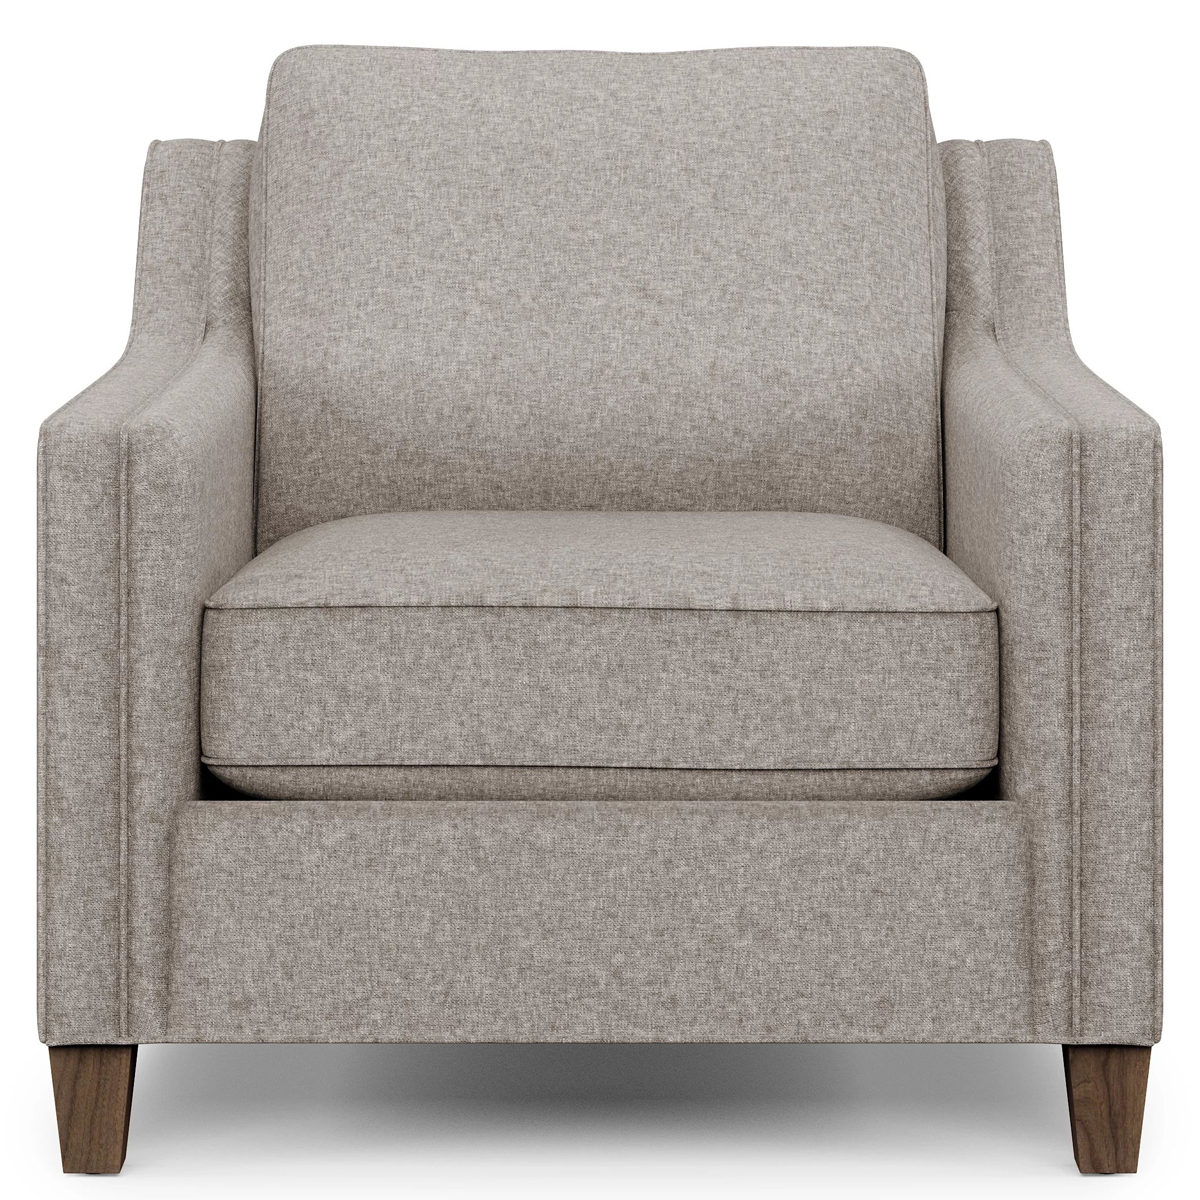 Picture of FINLEY QS CHAIR